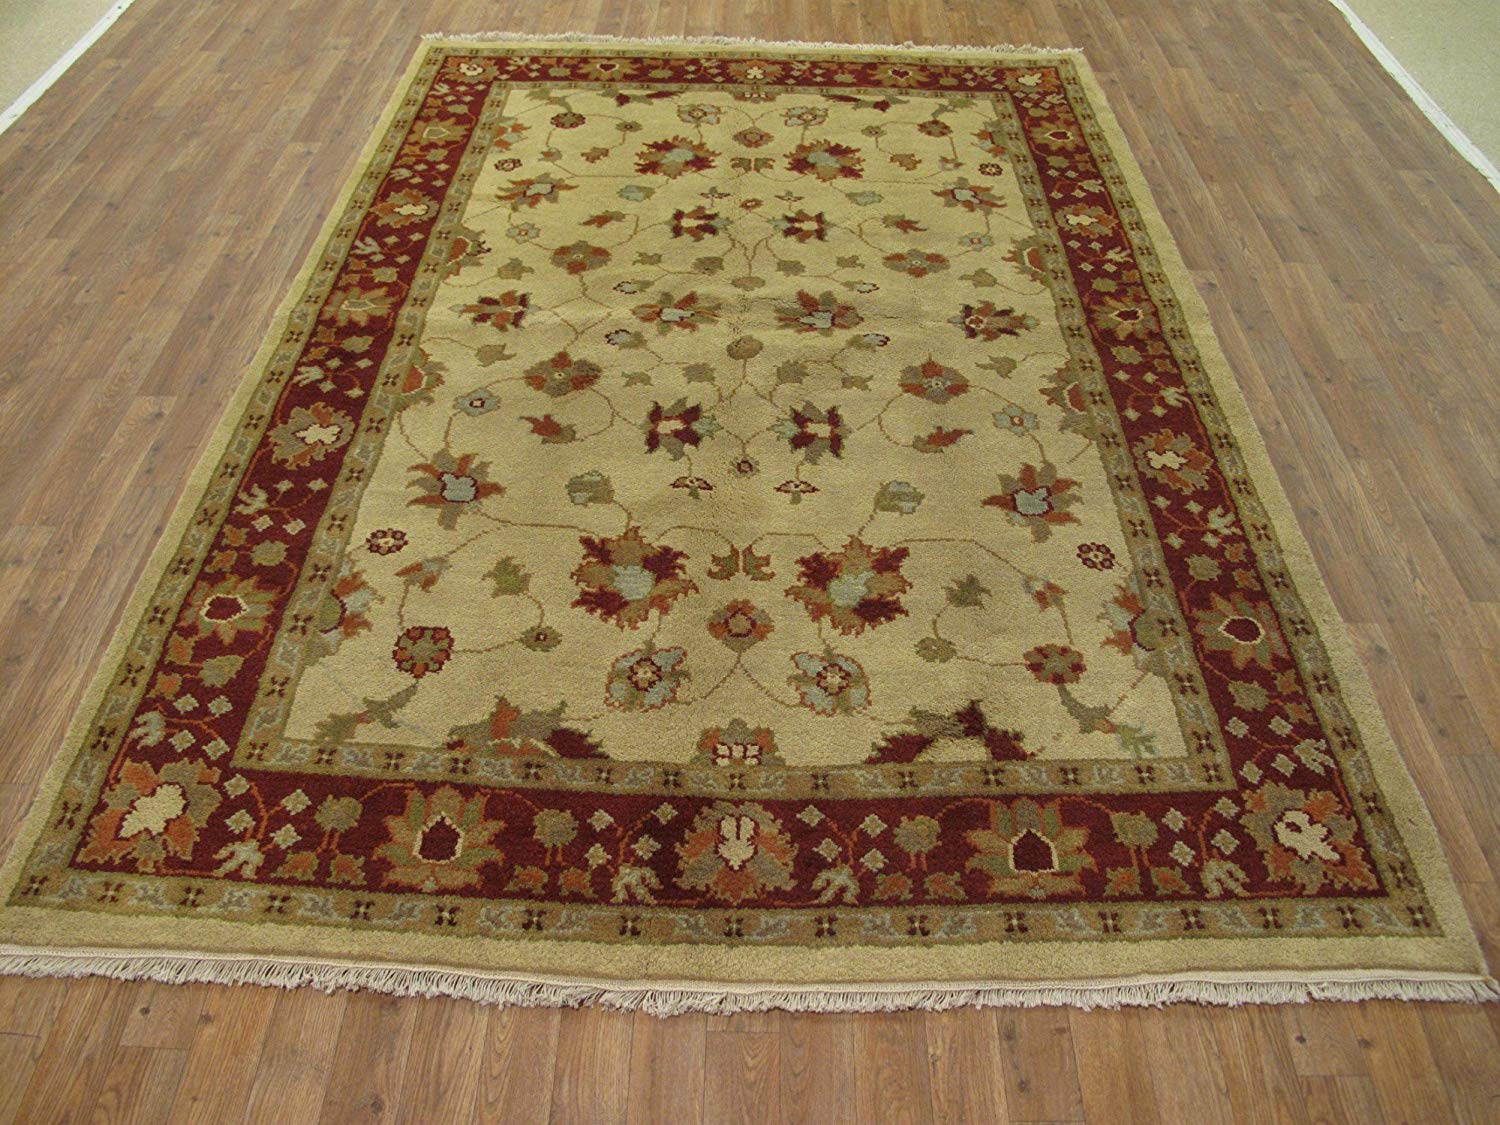 NYC Rugs New, Beige, 6' x 8'9 Indo Mahal Rug - Hand-Knotted Wool